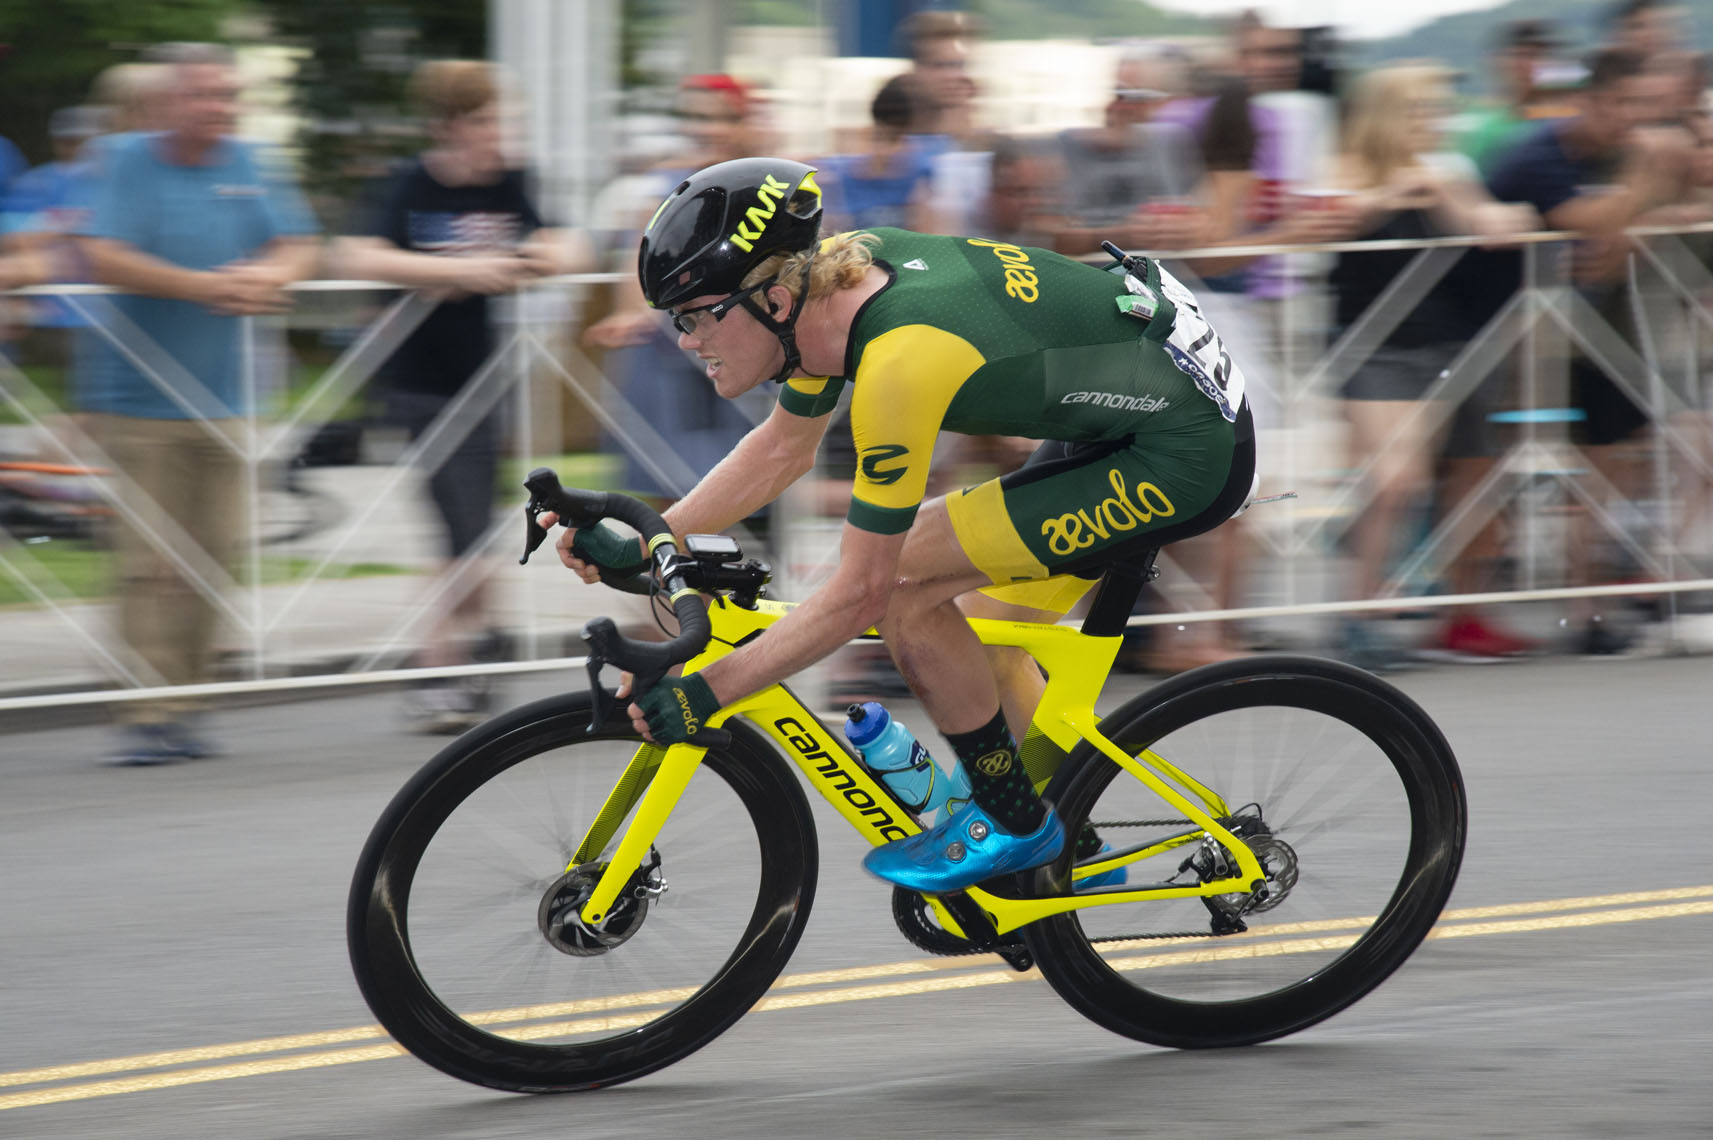 USPRO National Cycling Championships, 2019